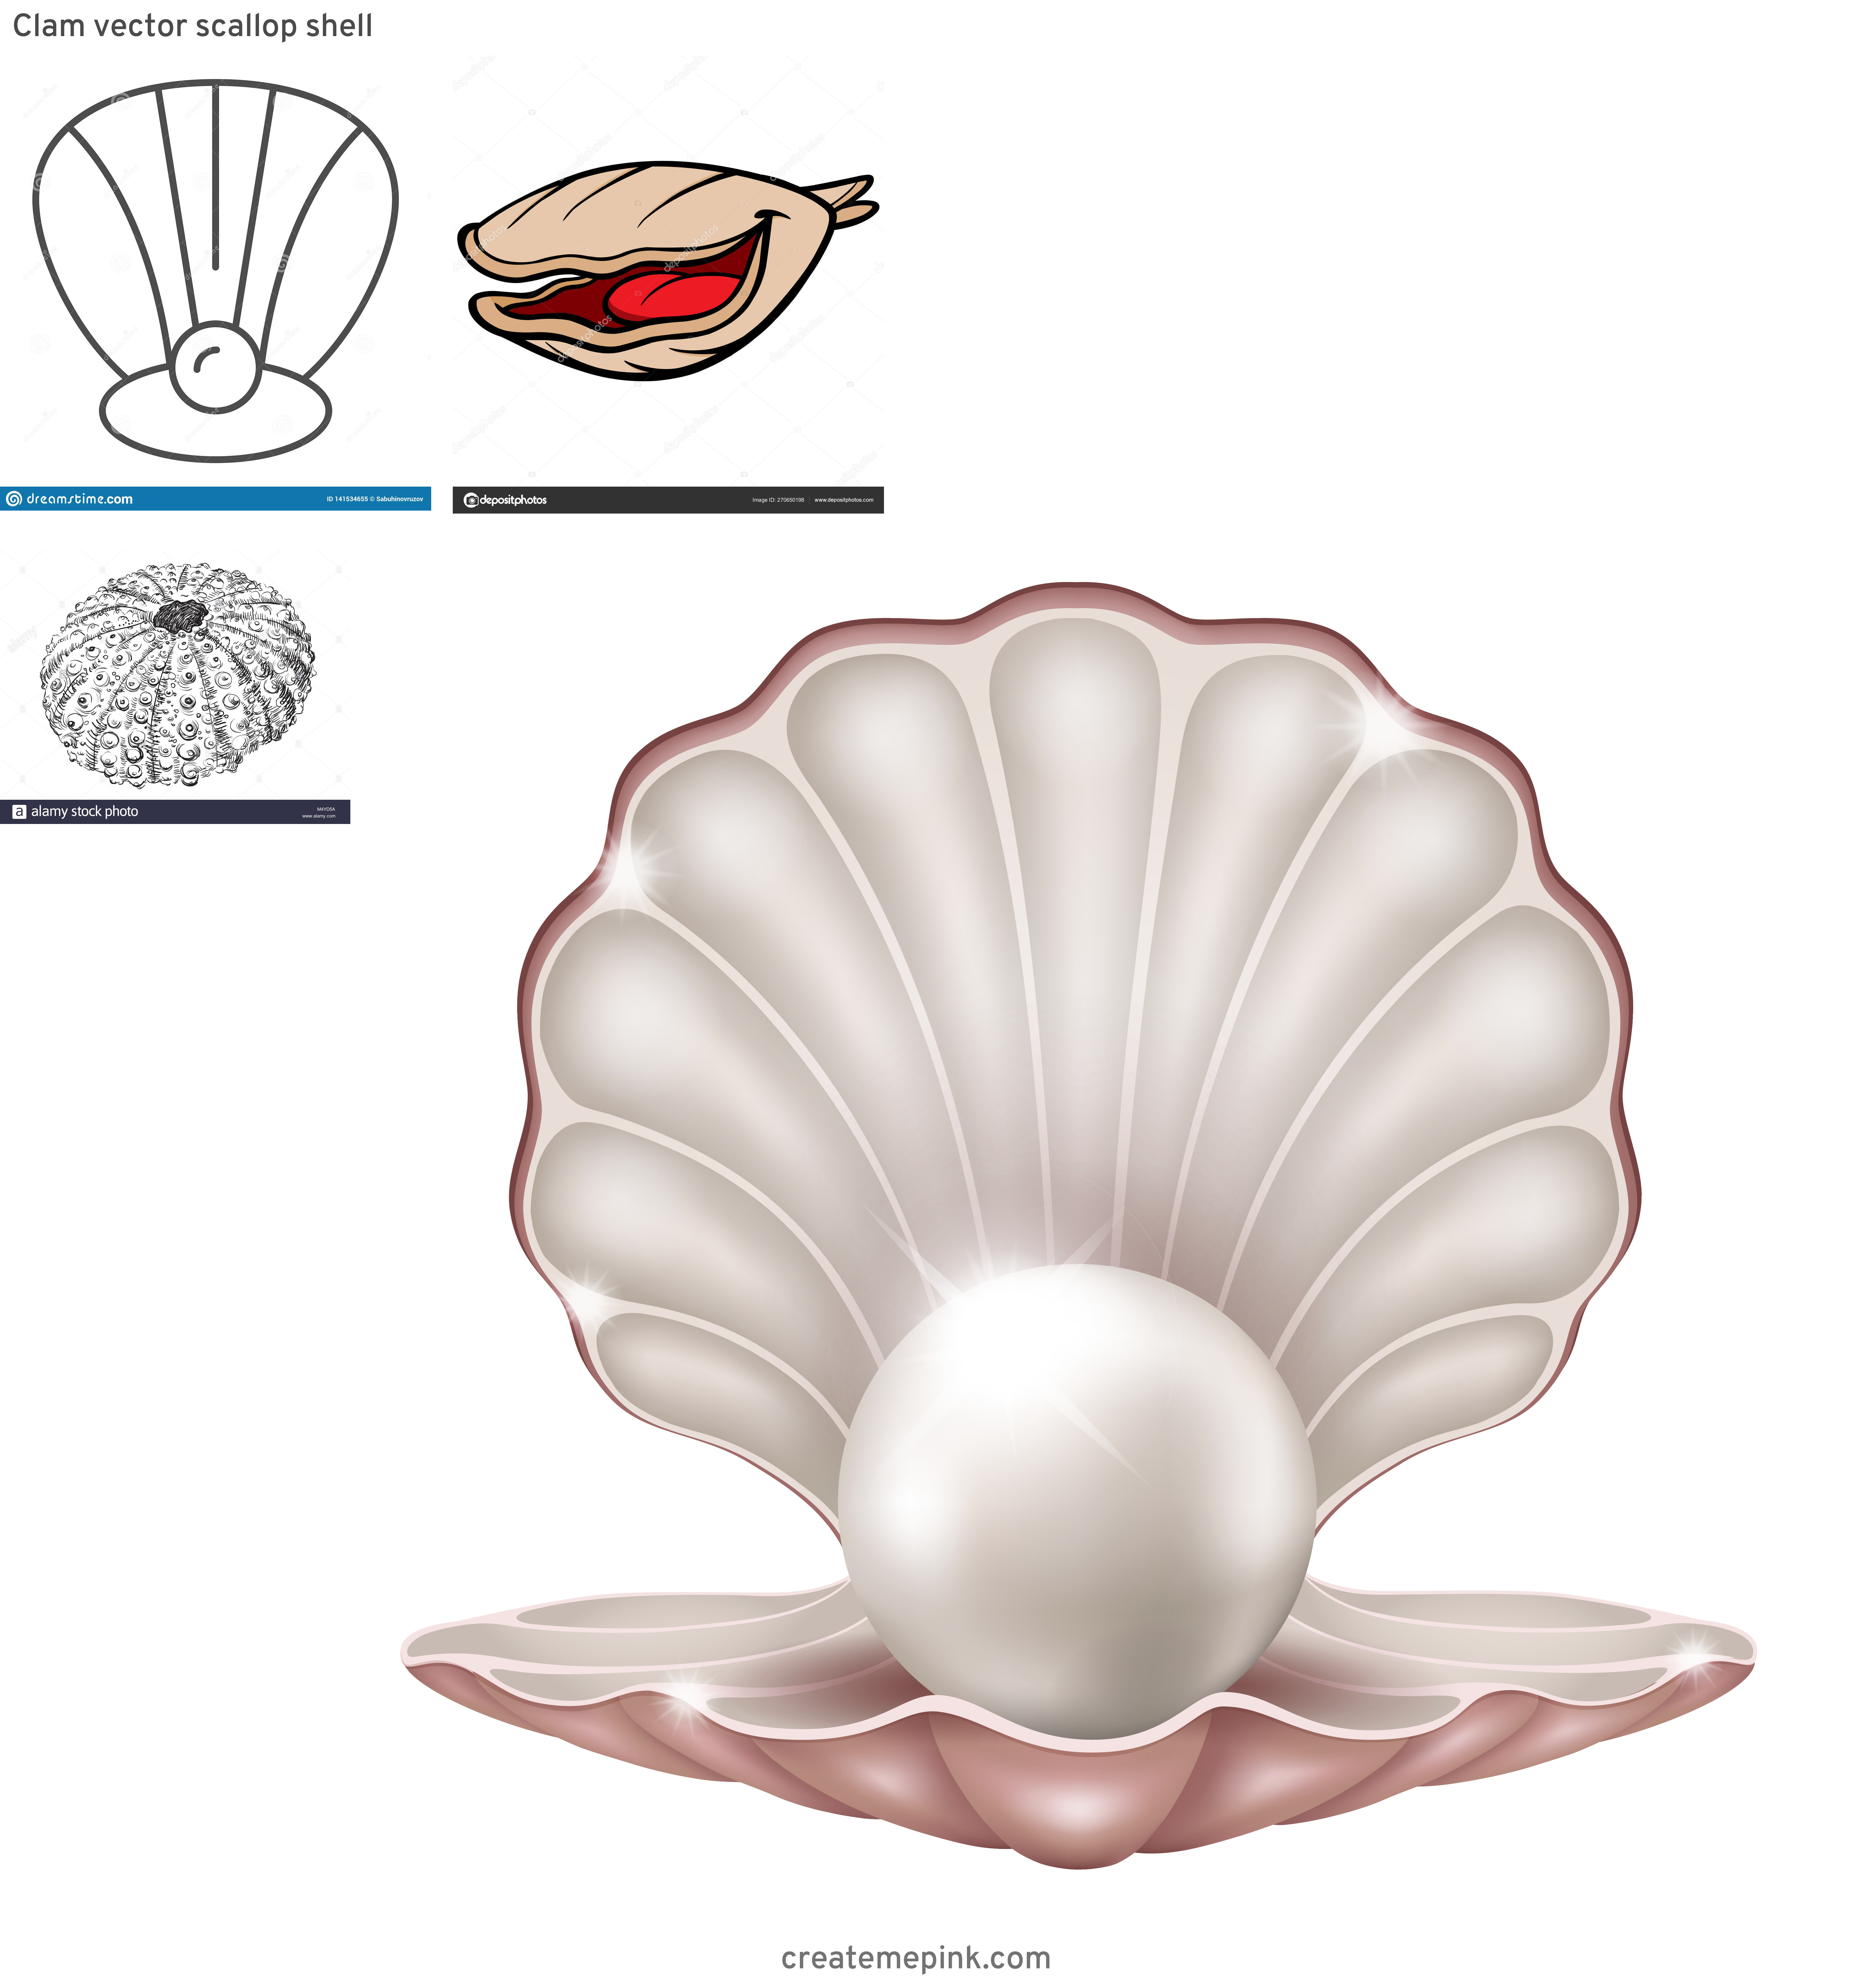 Clam Vector: Clam Vector Scallop Shell